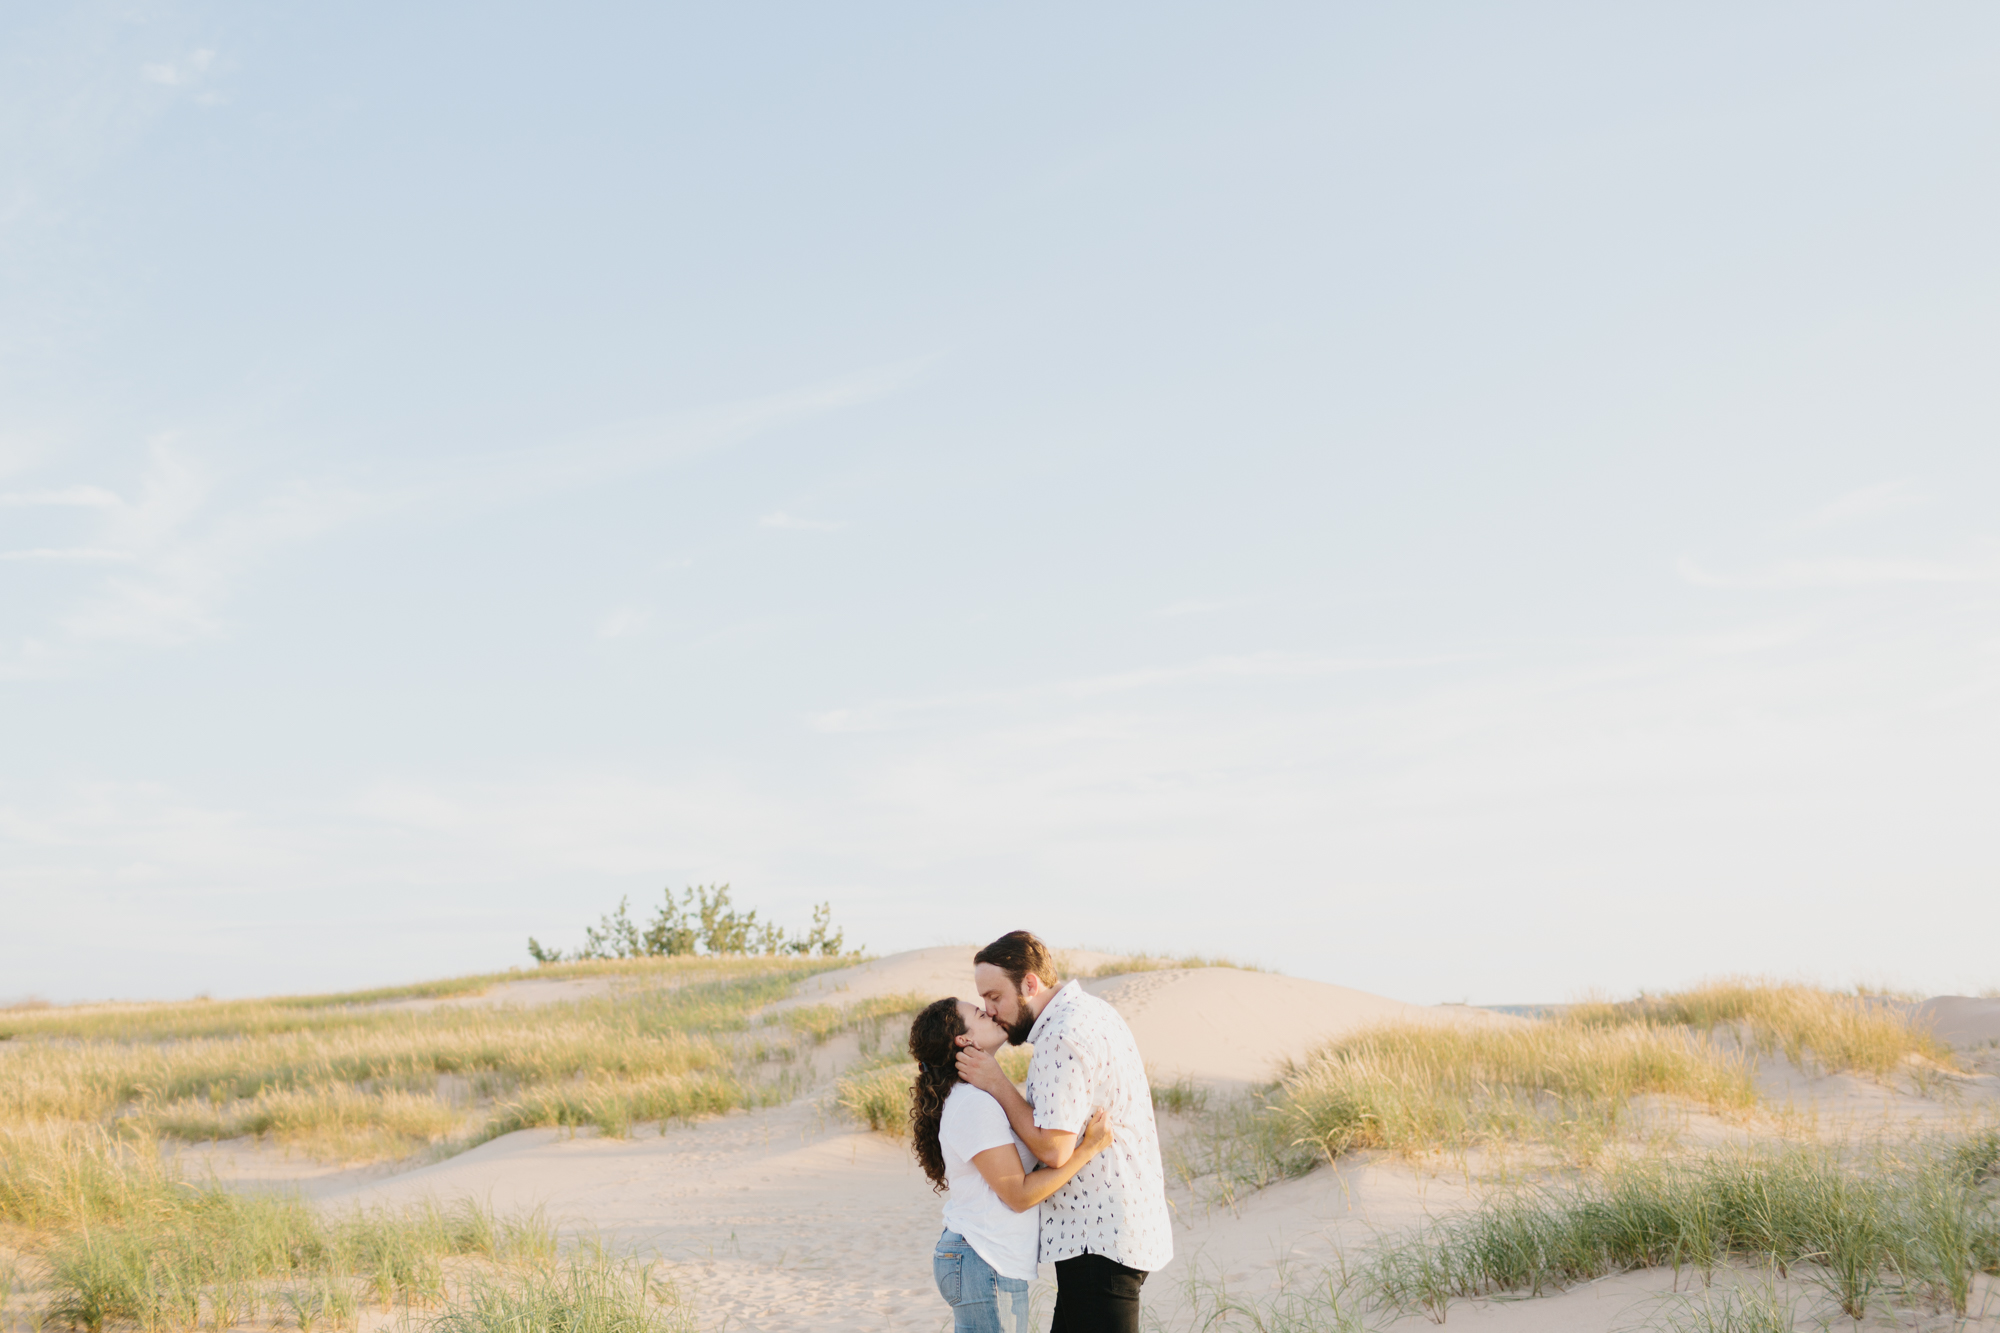 Northern Michigan Sleeping Bear Dunes Wedding Engagement Photographer Mae Stier-012.jpg